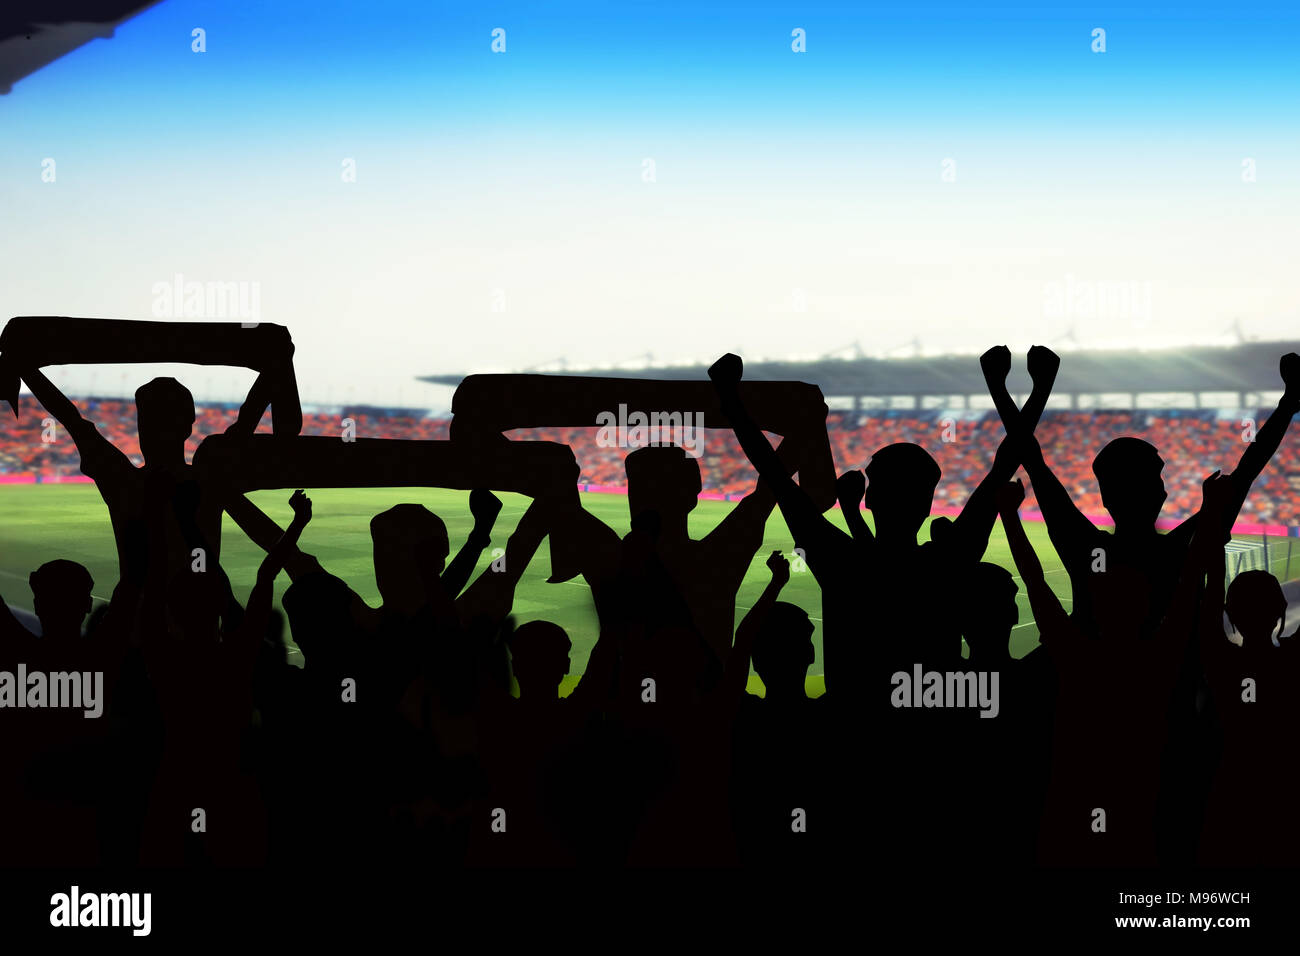 silhouettes of Soccer fans in a match and Spectators at football stadium - Stock Image